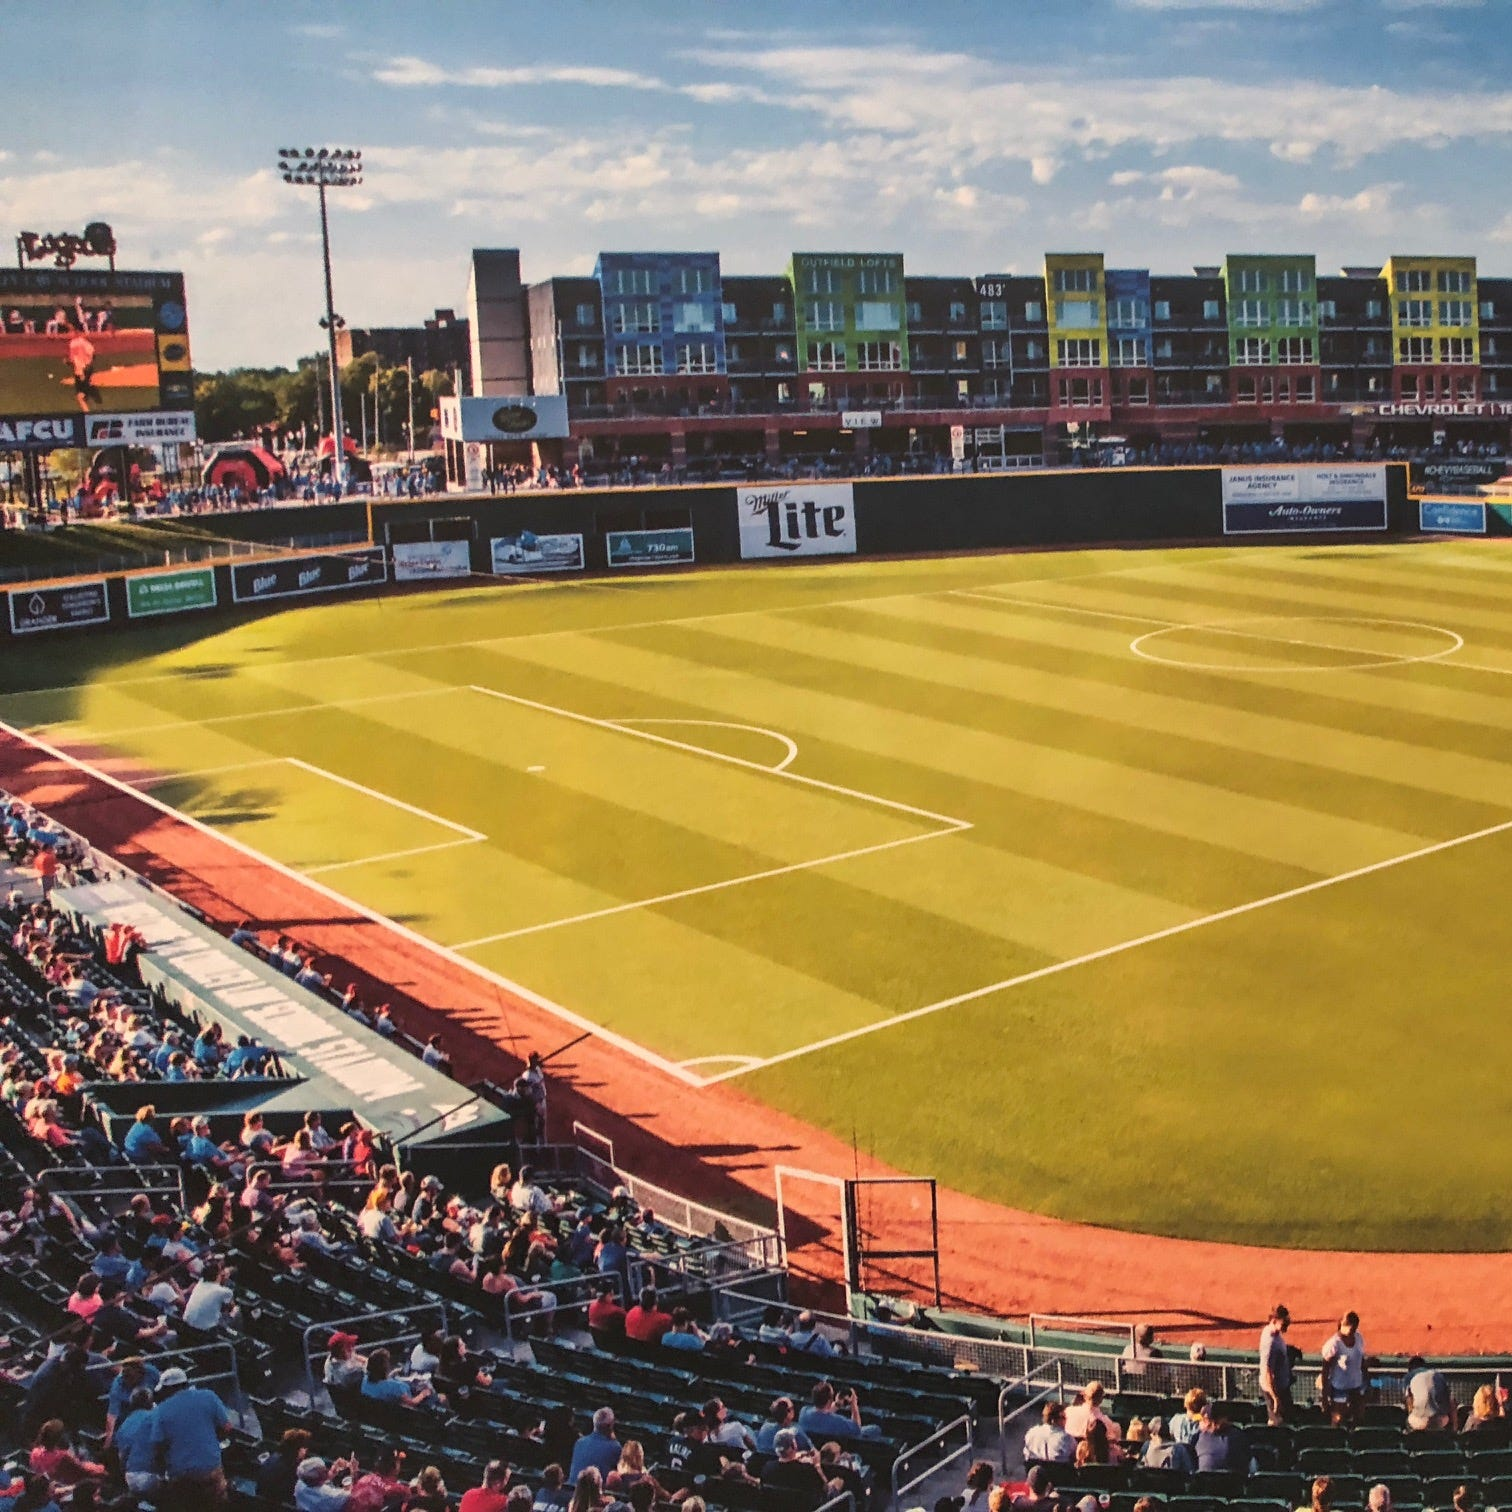 Lansing pro soccer team likely to begin play this spring at Lugnuts' stadium downtown